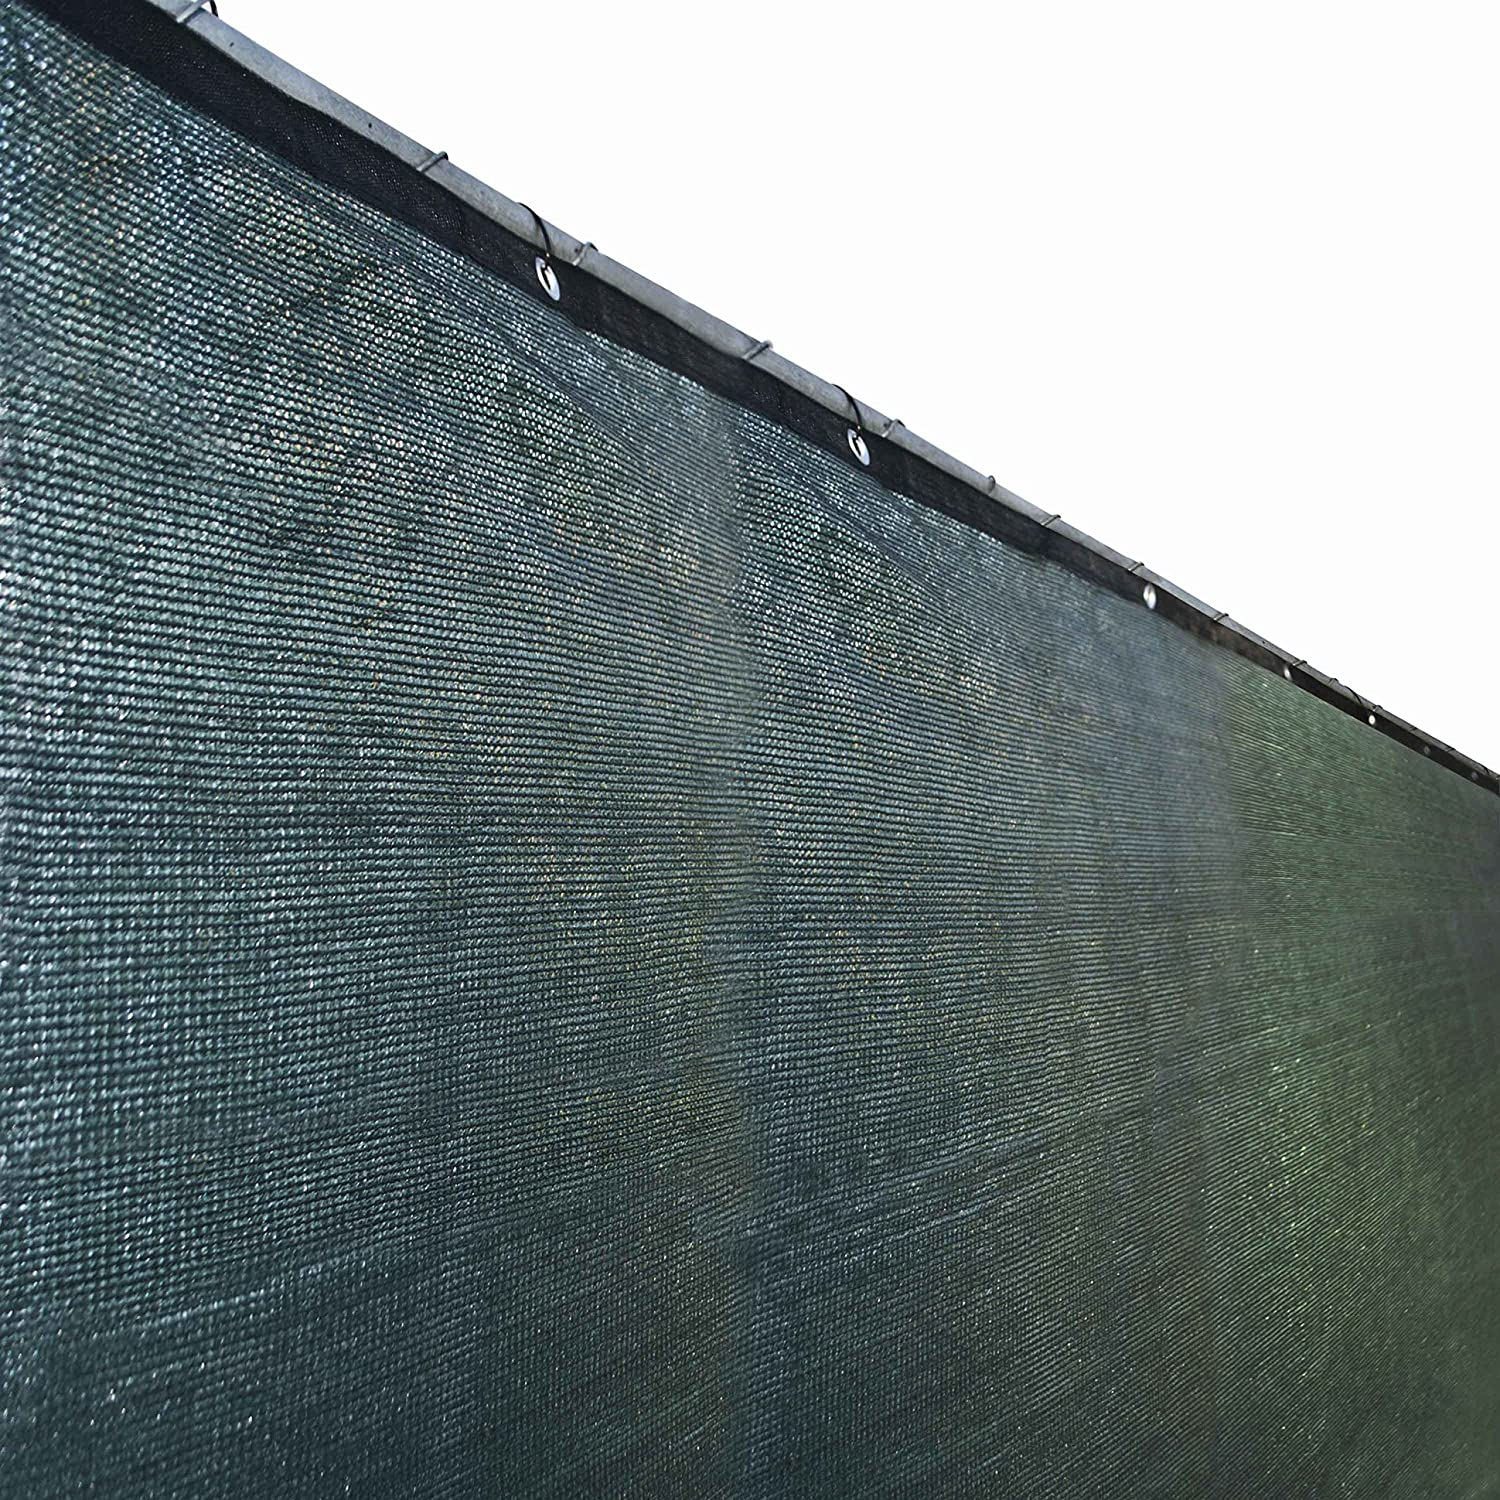 Privacy screen for chain link fences - Amazon Com Aleko 6 X 50 Feet Dark Green Fence Privacy Screen Outdoor Backyard Fencing Privacy Windscreen Shade Cover Mesh Fabric With Grommets Garden